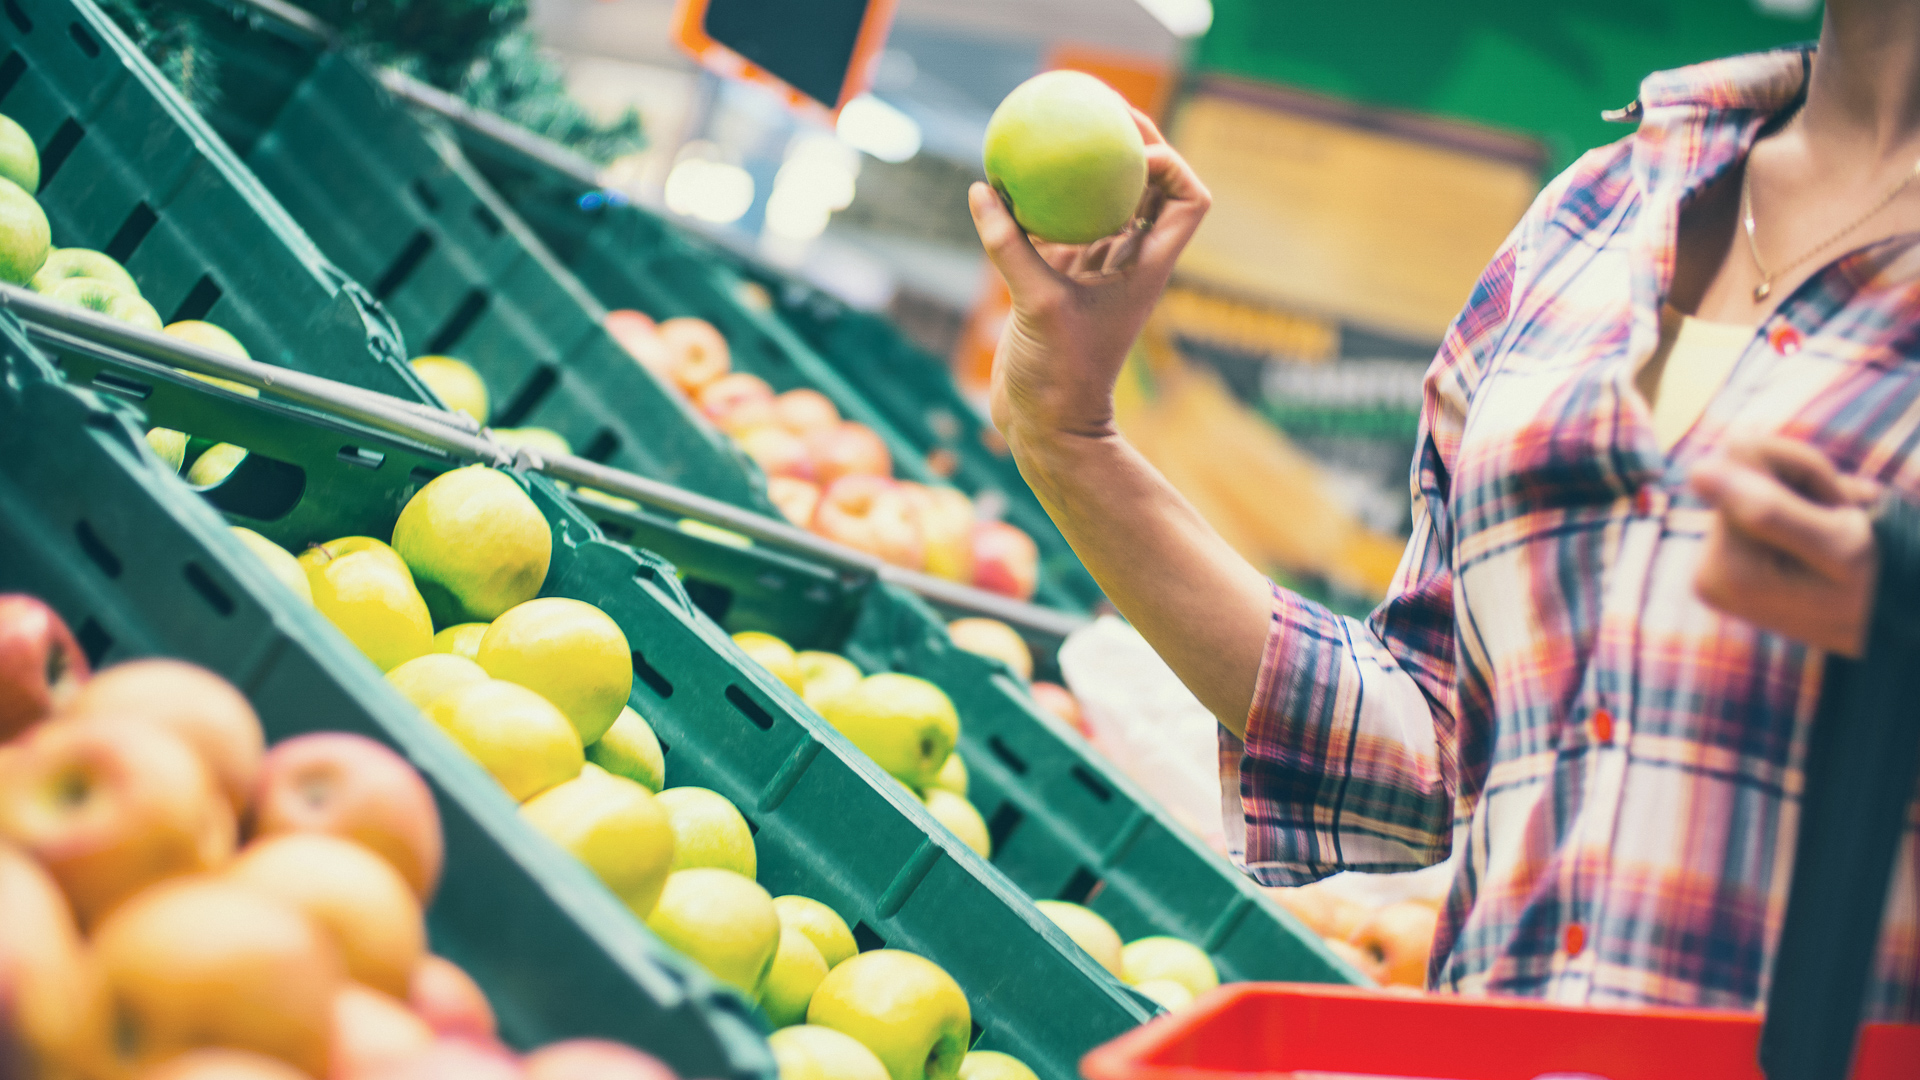 woman grocery shopping fresh produce